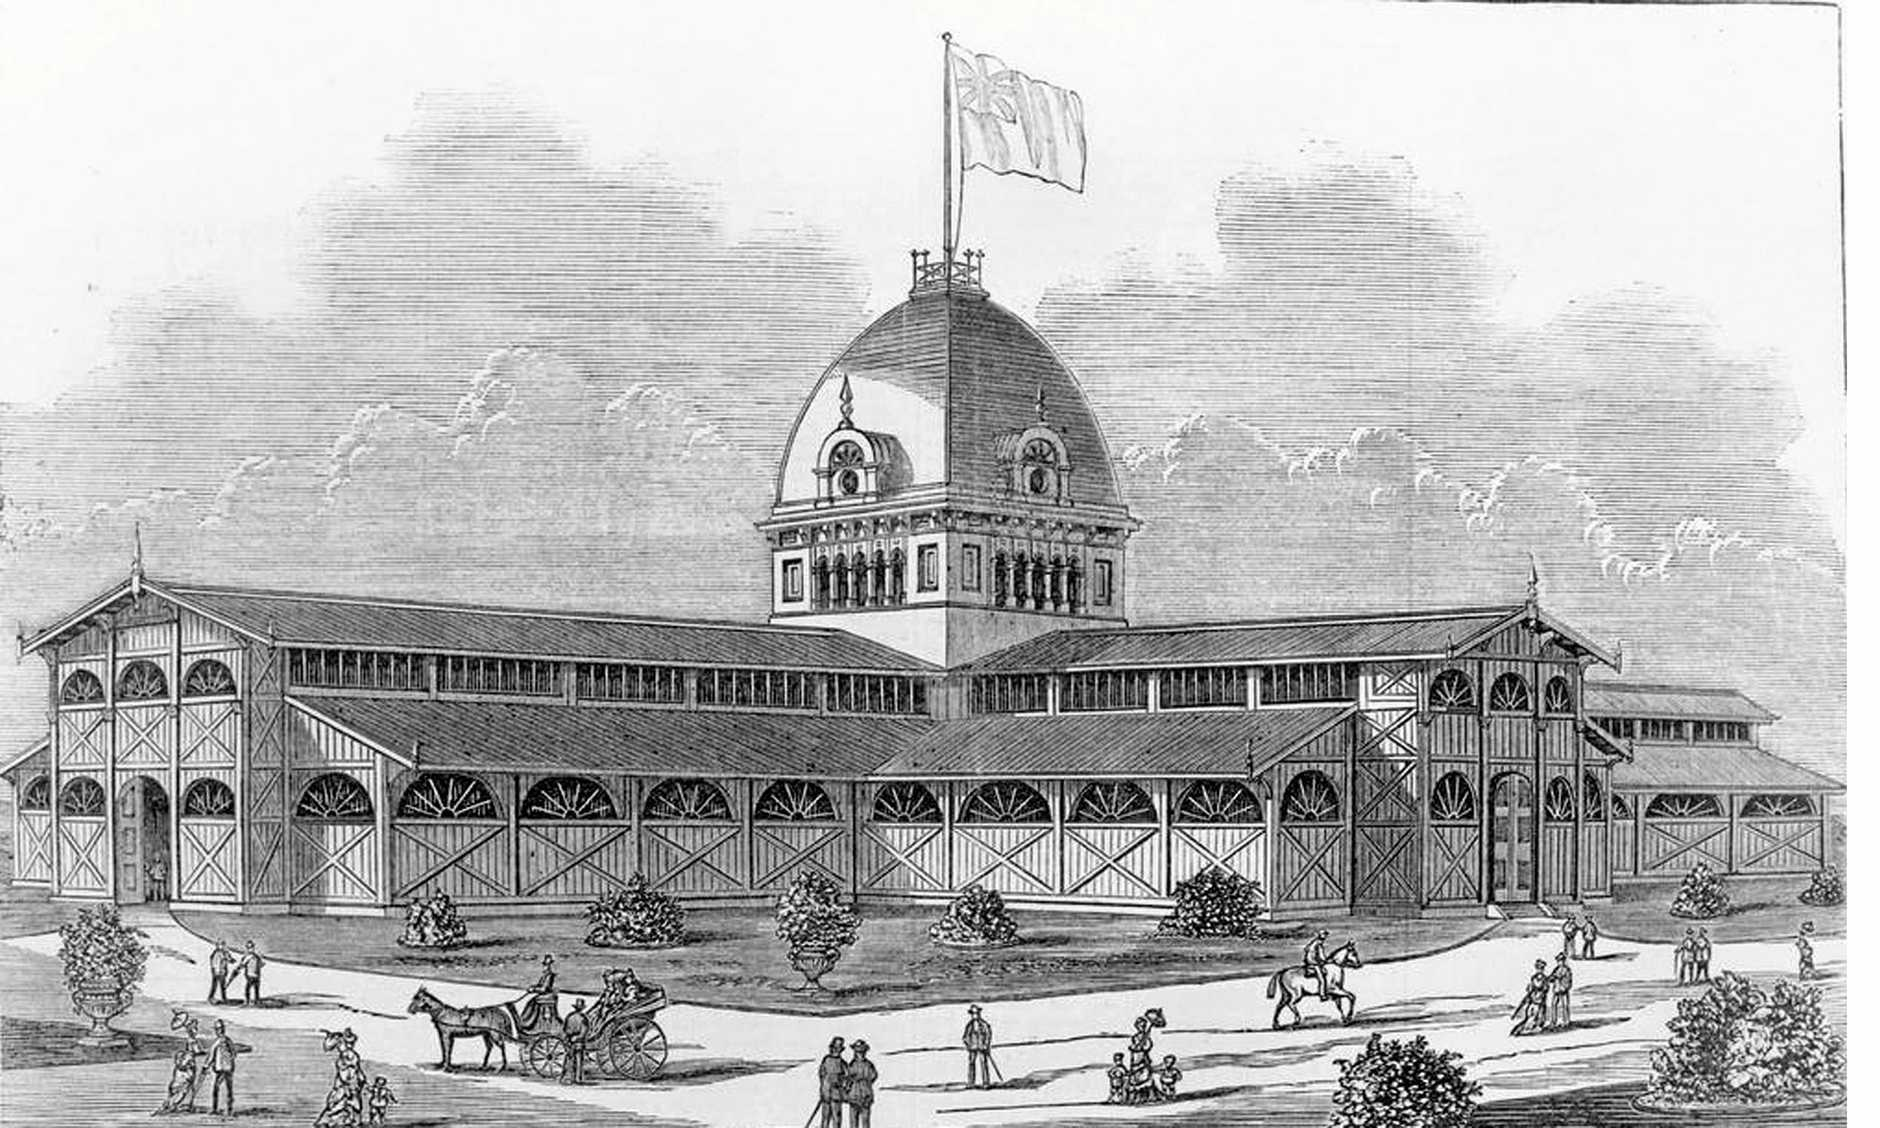 HISTORIC: The Exhibition Building in Brisbane where the two sons of the Prince of Wales (Princes Edward and George) visited.